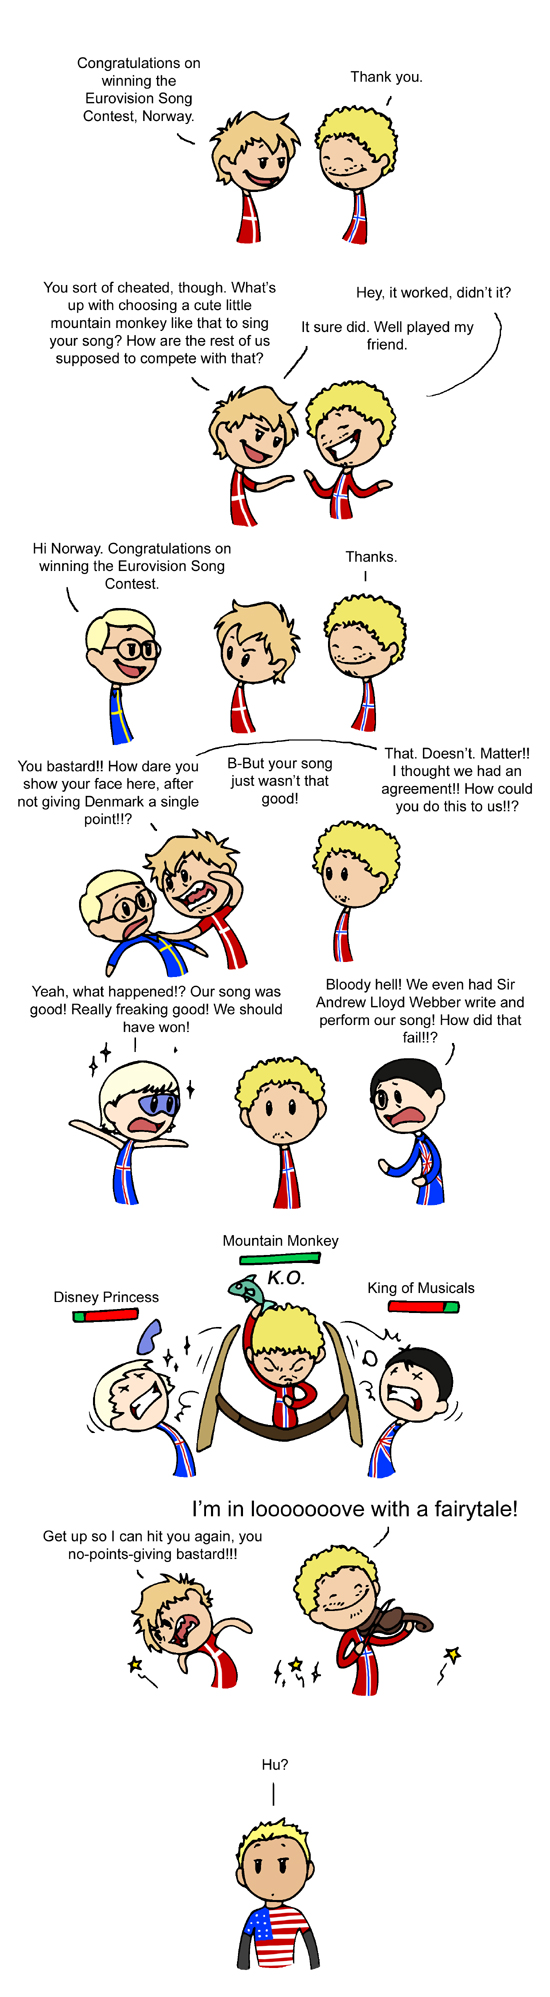 Eurovision Song Contest satwcomic.com